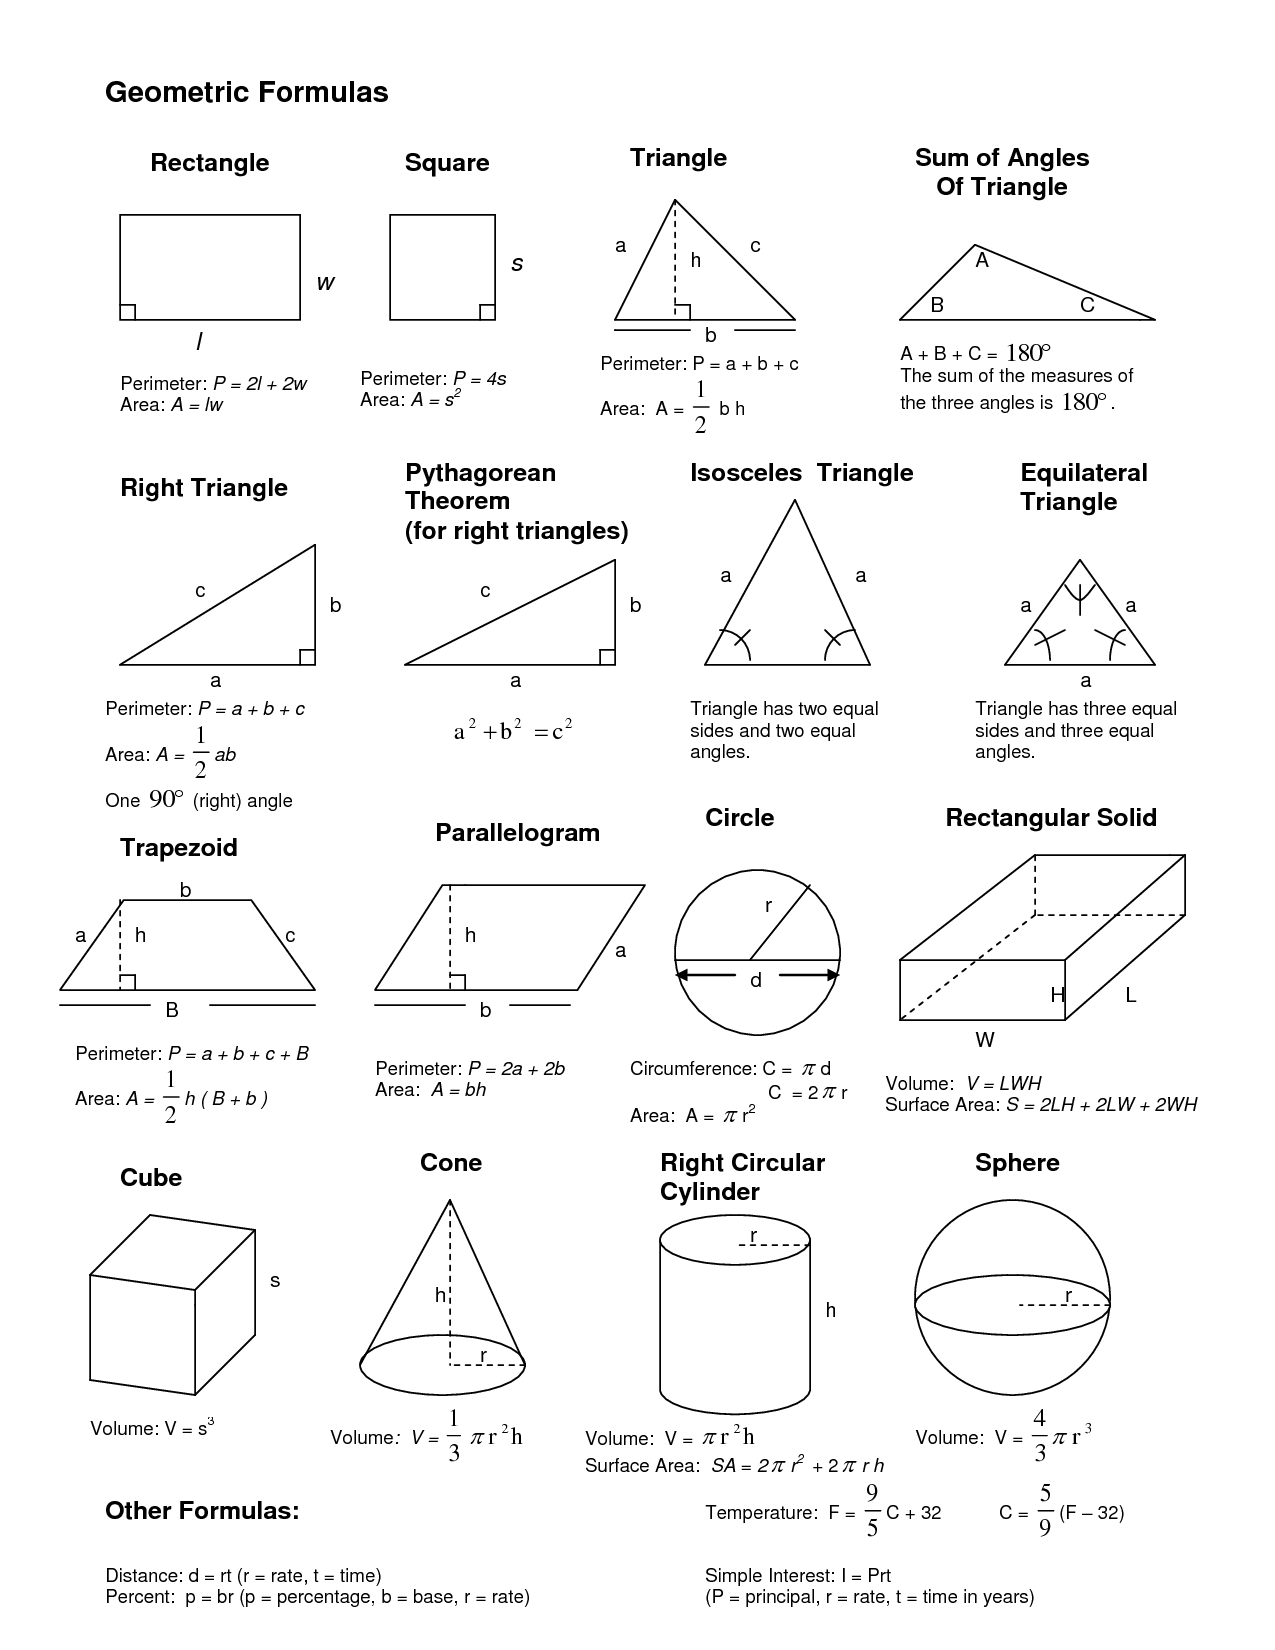 Geometrical Formulas … | Pinteres… within Geometry Shapes And Formulas 25050